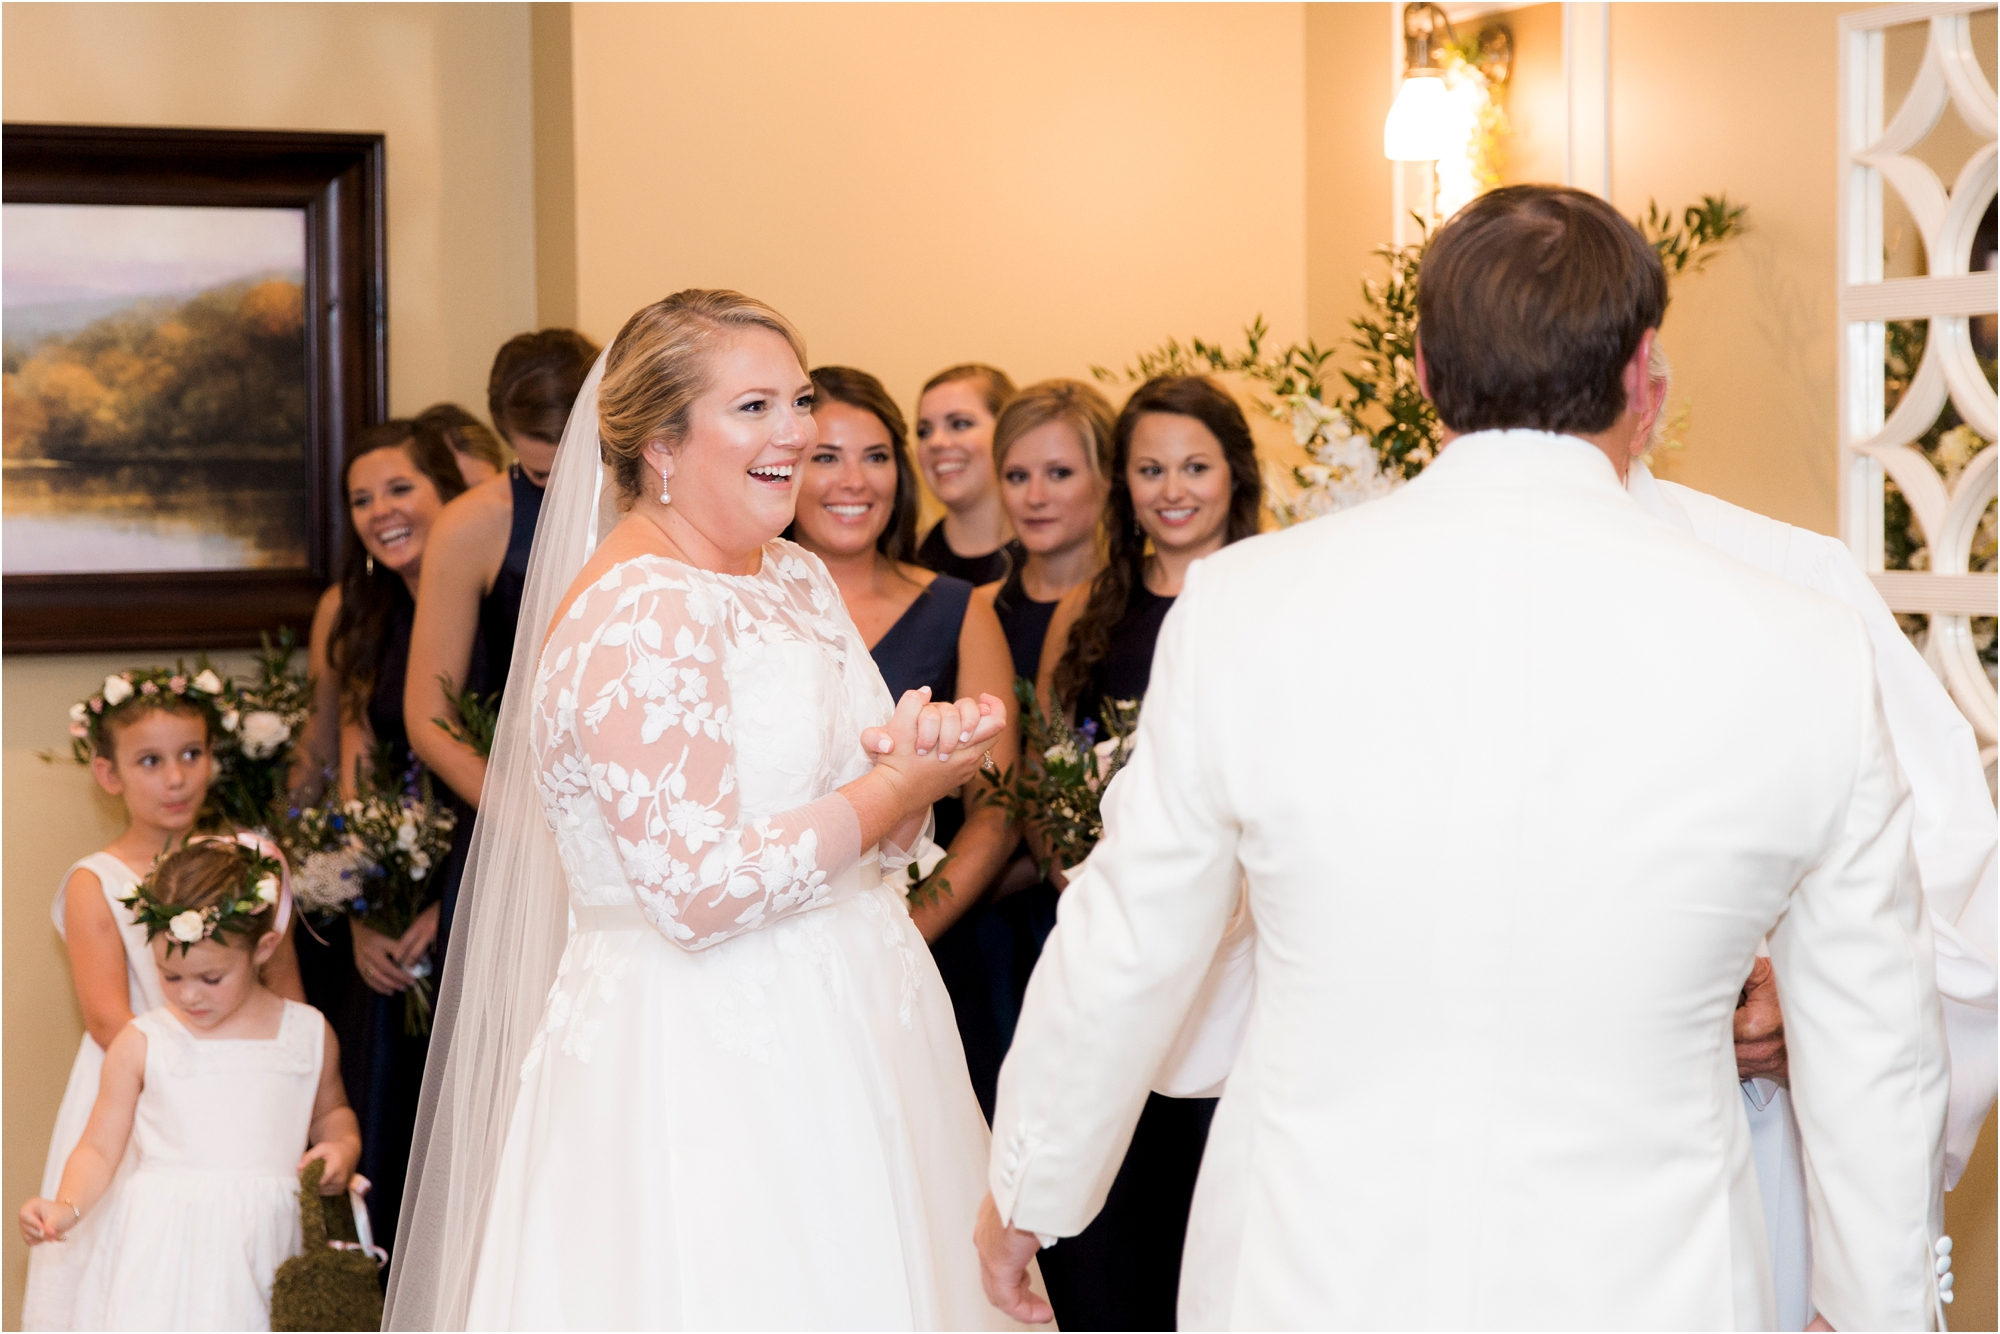 rachel-robert-chesapeake-inn-urbanna-virginia-wedding-photos_0010.jpg